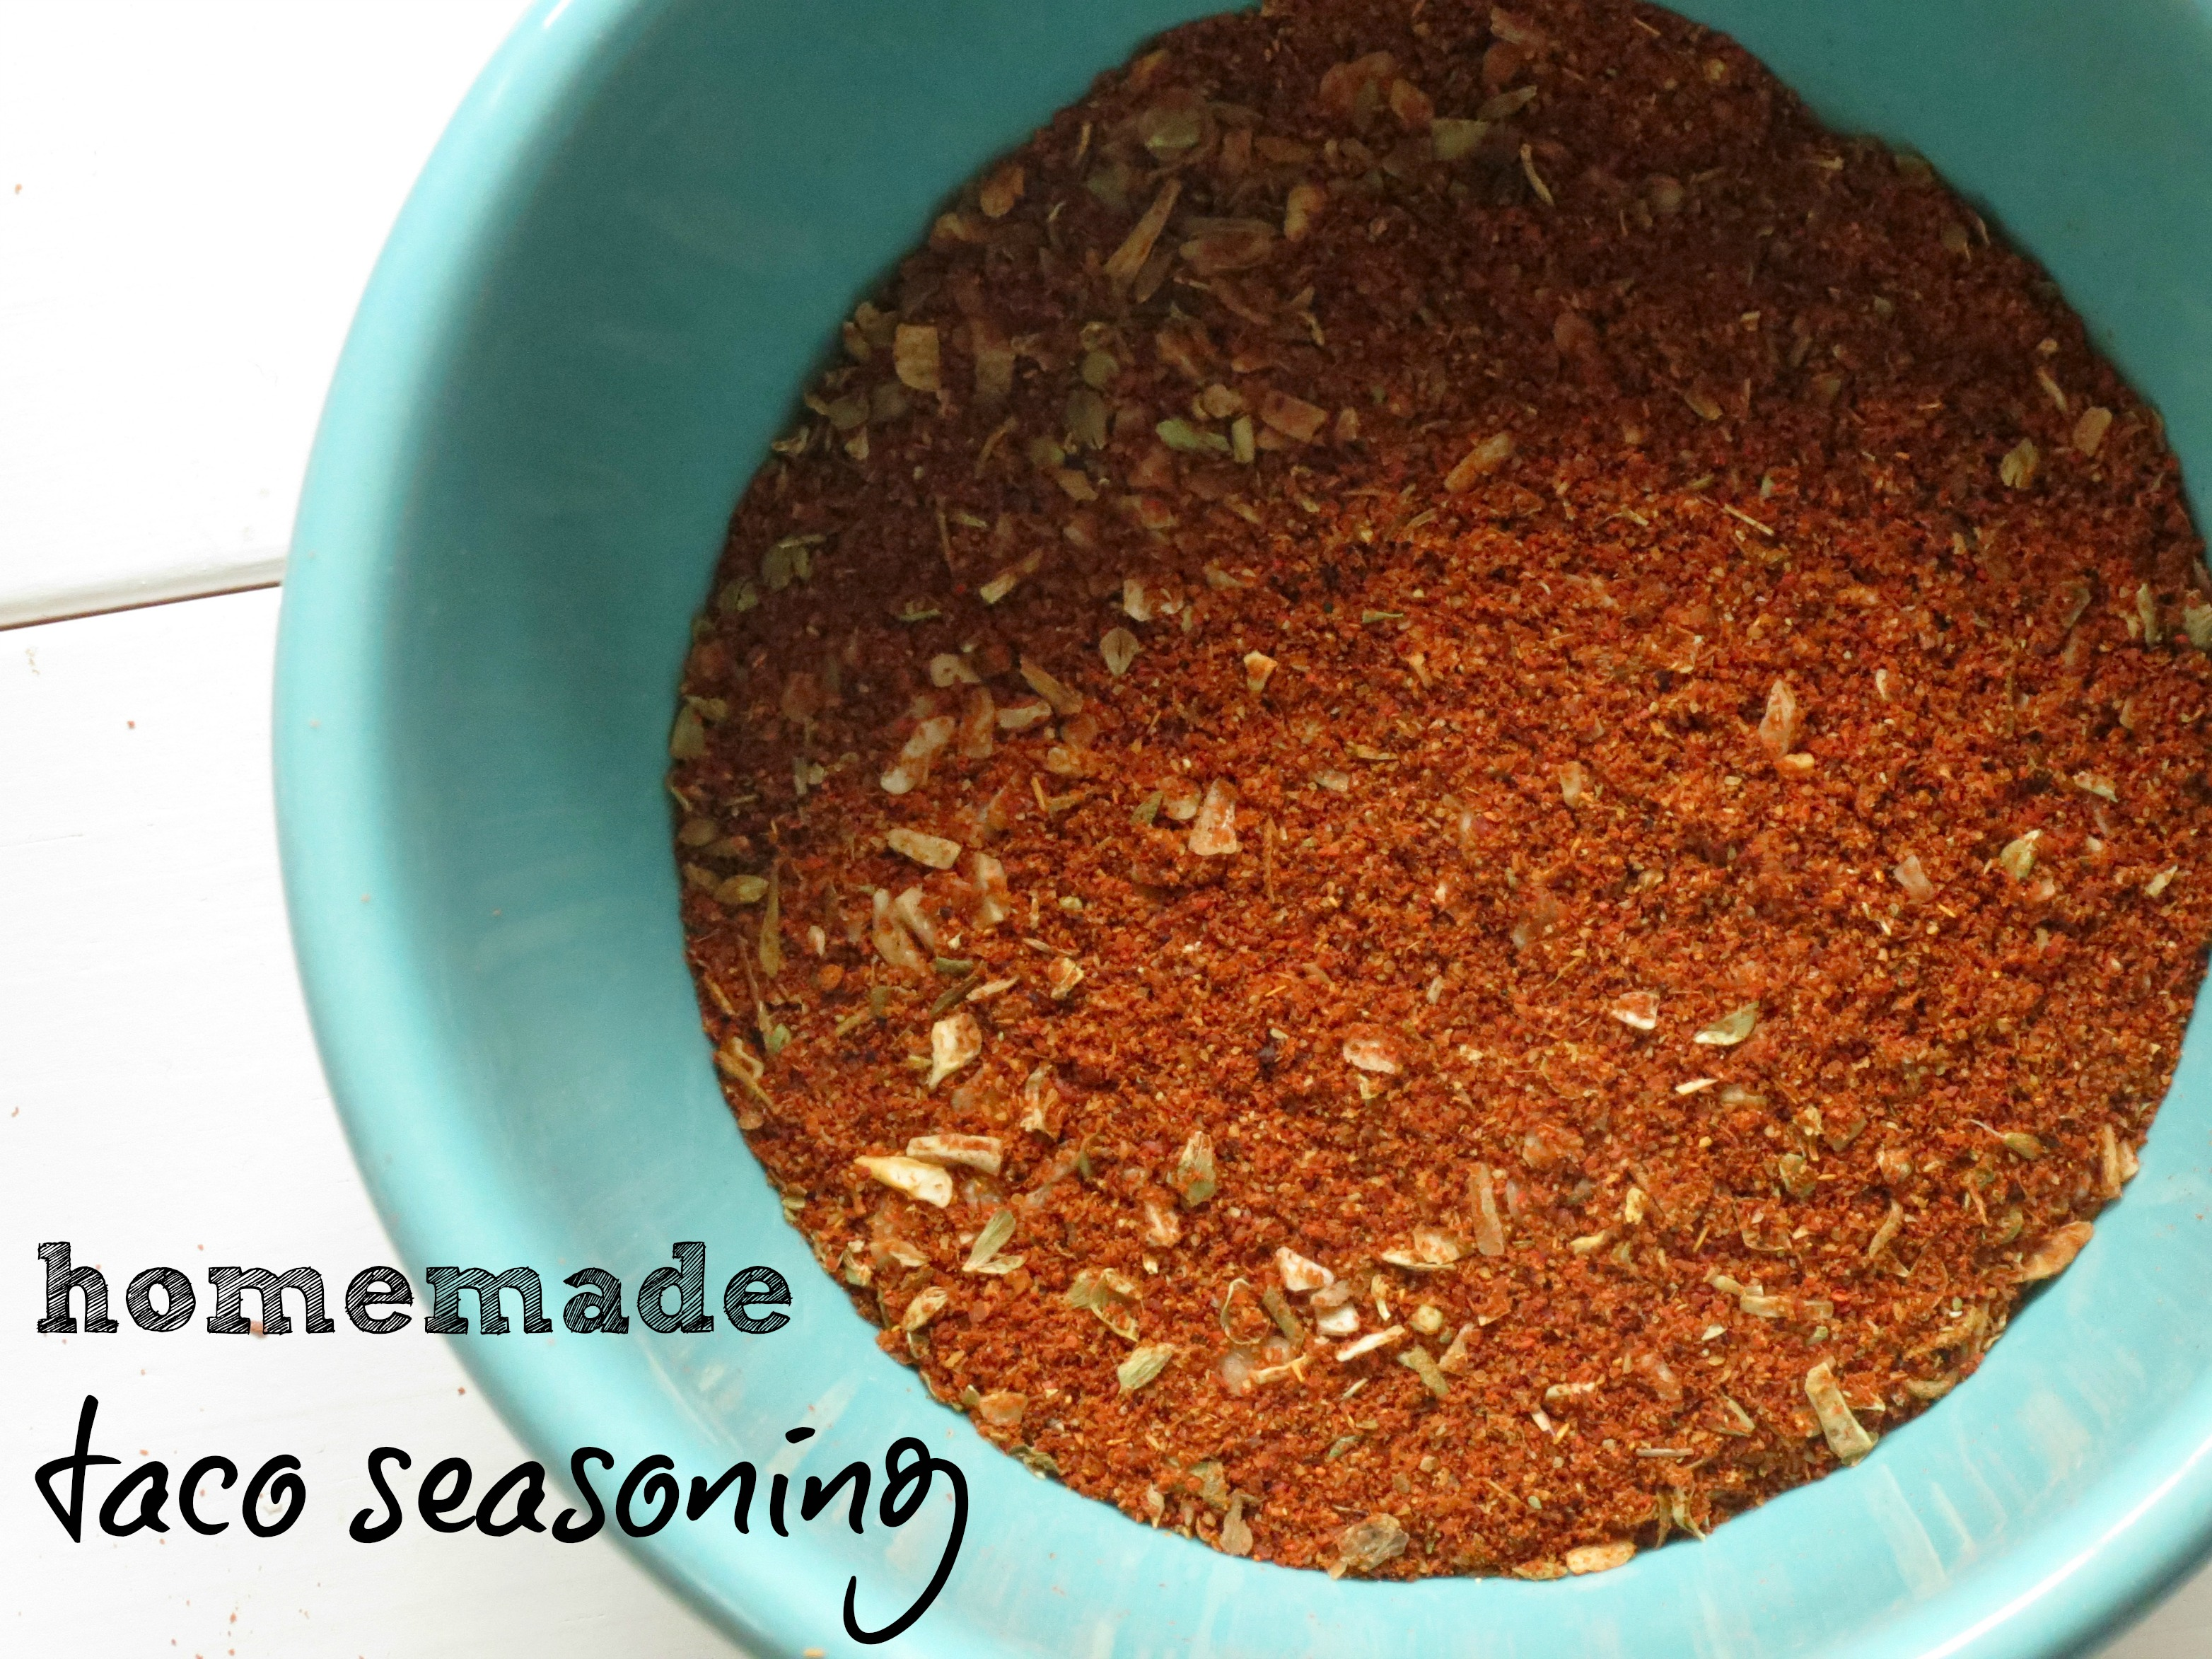 Homemade Chili And Taco Seasoning Recipe — Dishmaps